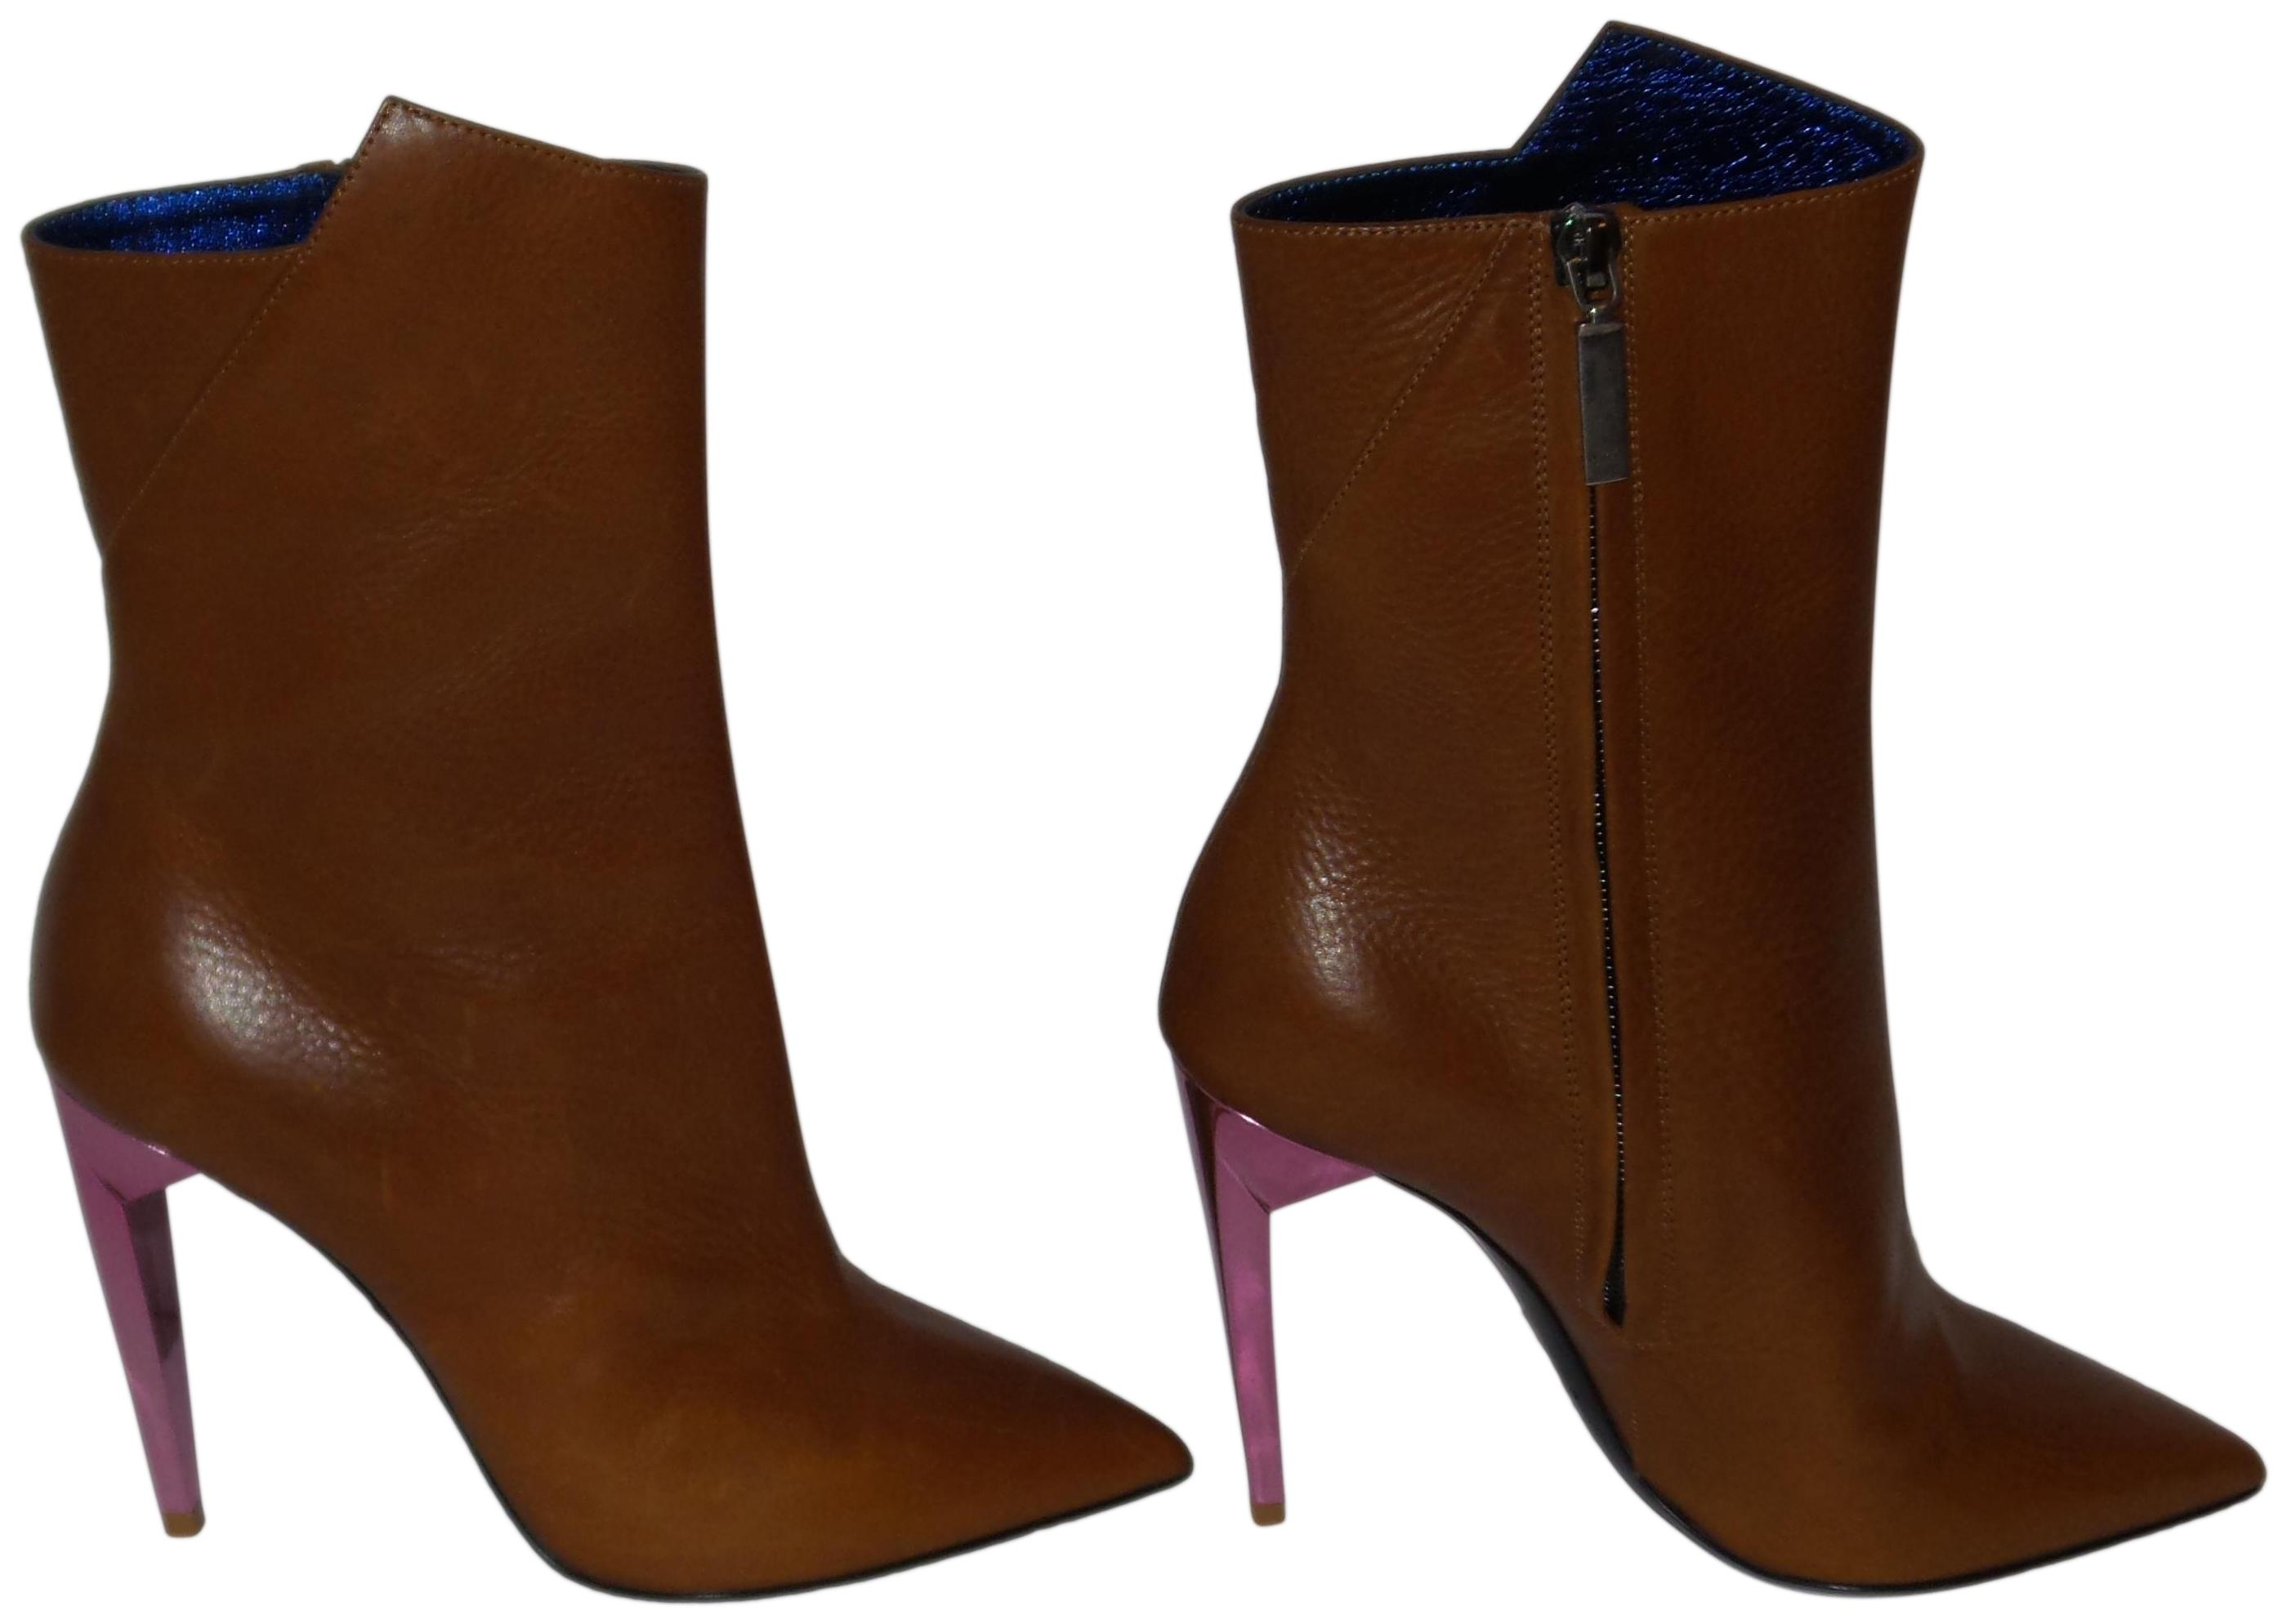 36b6214ddbc5 Saint Laurent Tan Freja Leather Ankle Boots Booties Size Size Size EU 36  (Approx. US 6) Regular (M